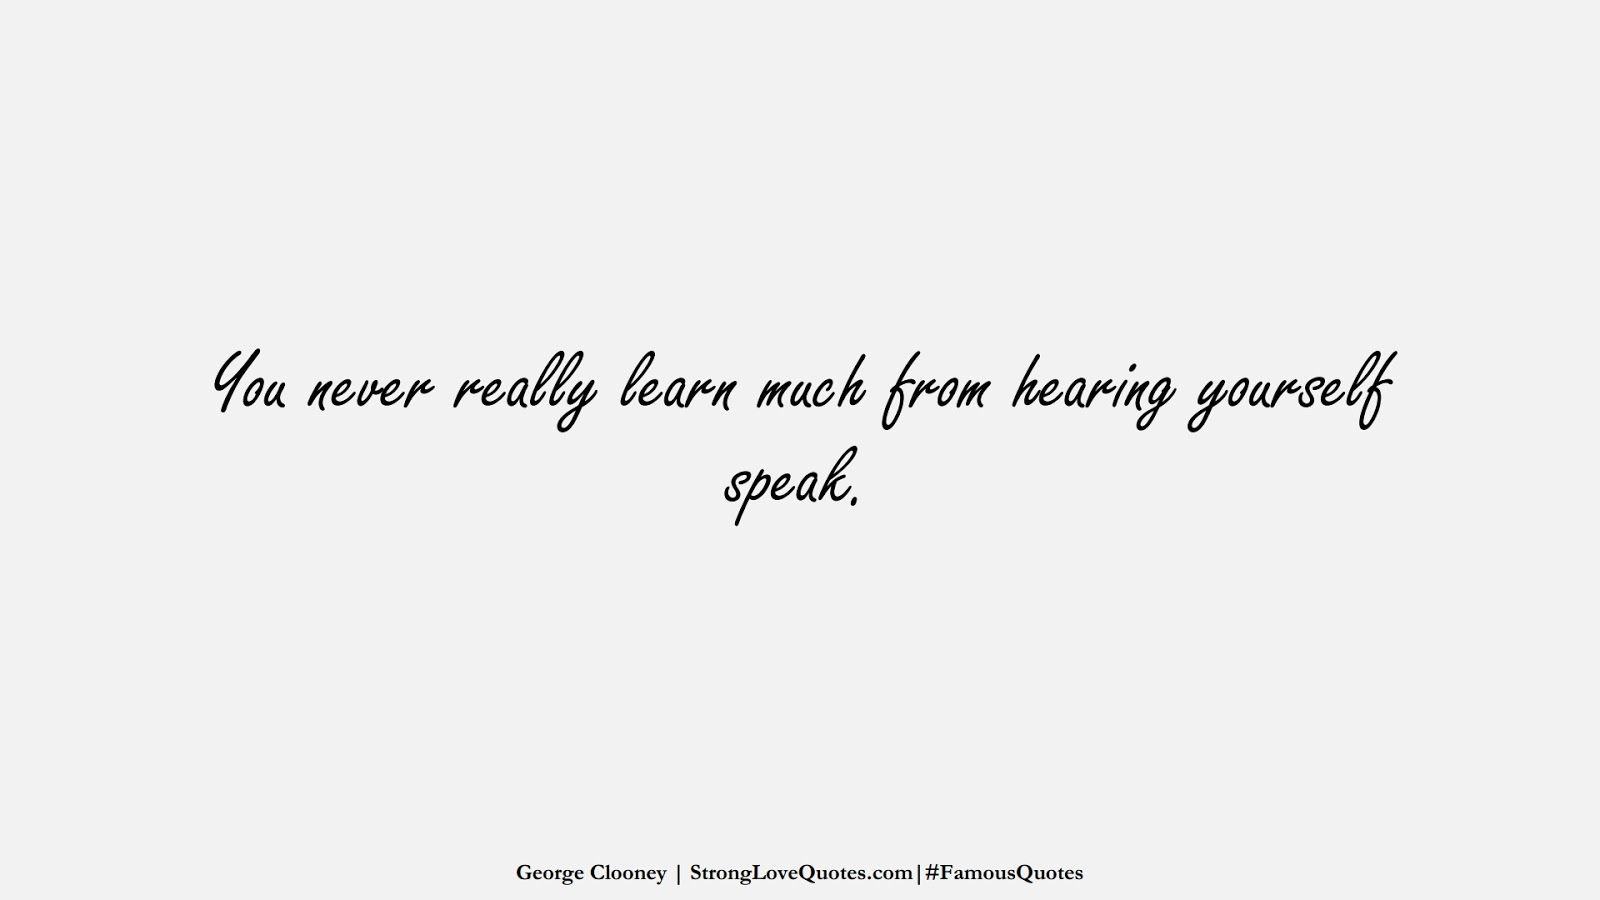 You never really learn much from hearing yourself speak. (George Clooney);  #FamousQuotes